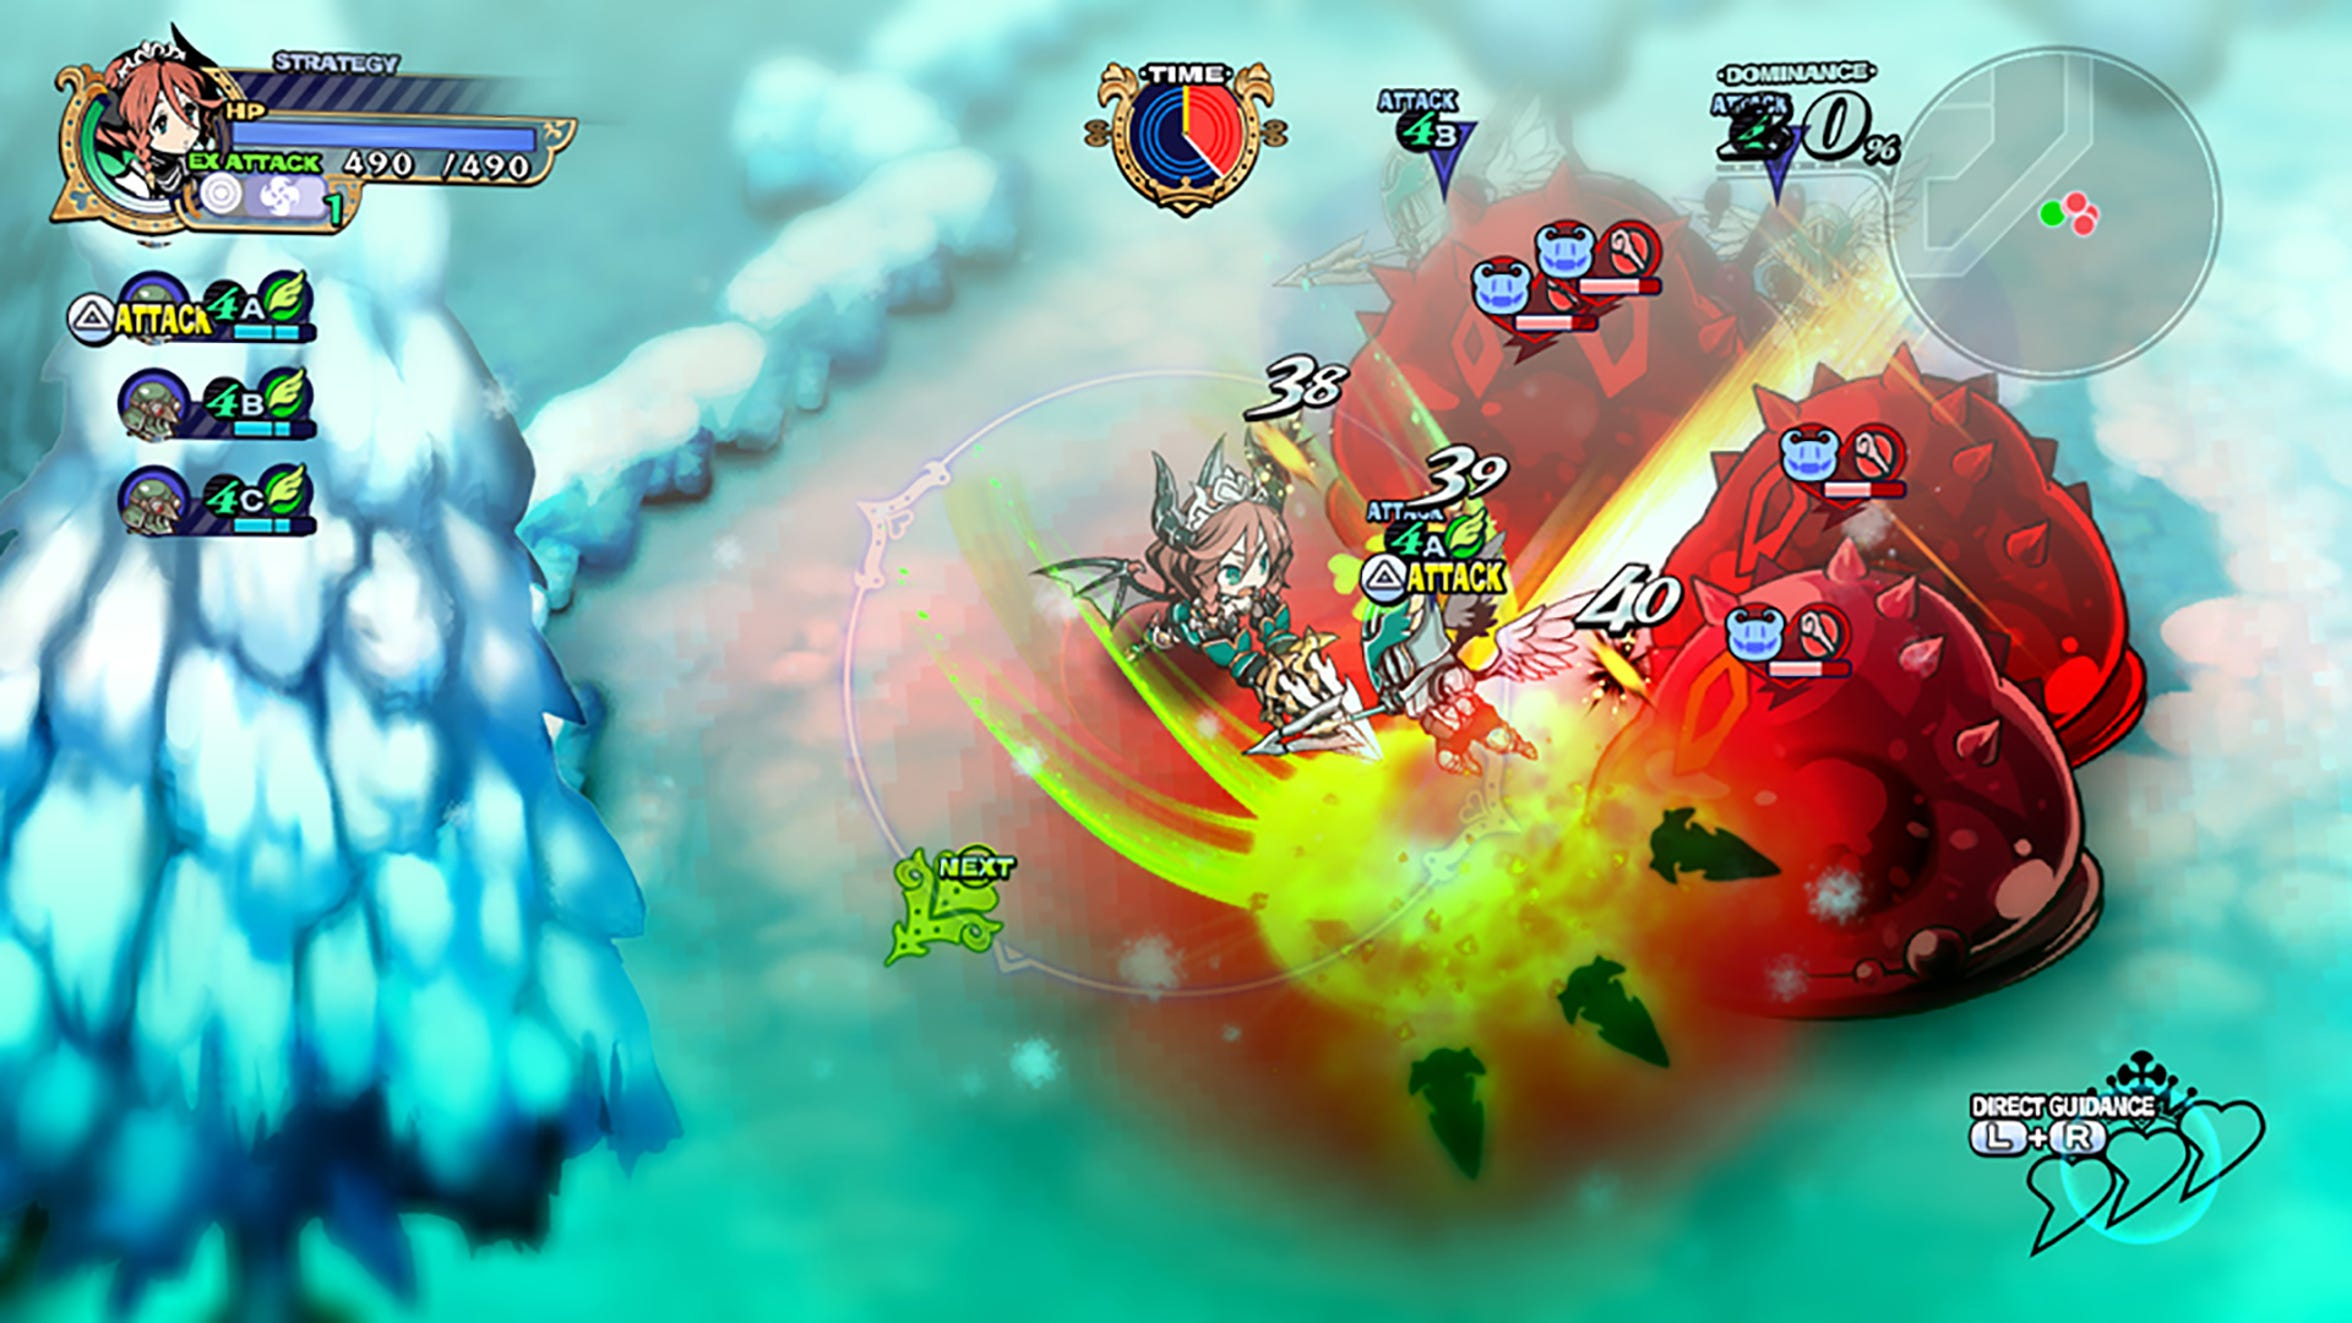 Gameplay of Dragon Princess Alpana from The Princess Guide for PlayStation 4.